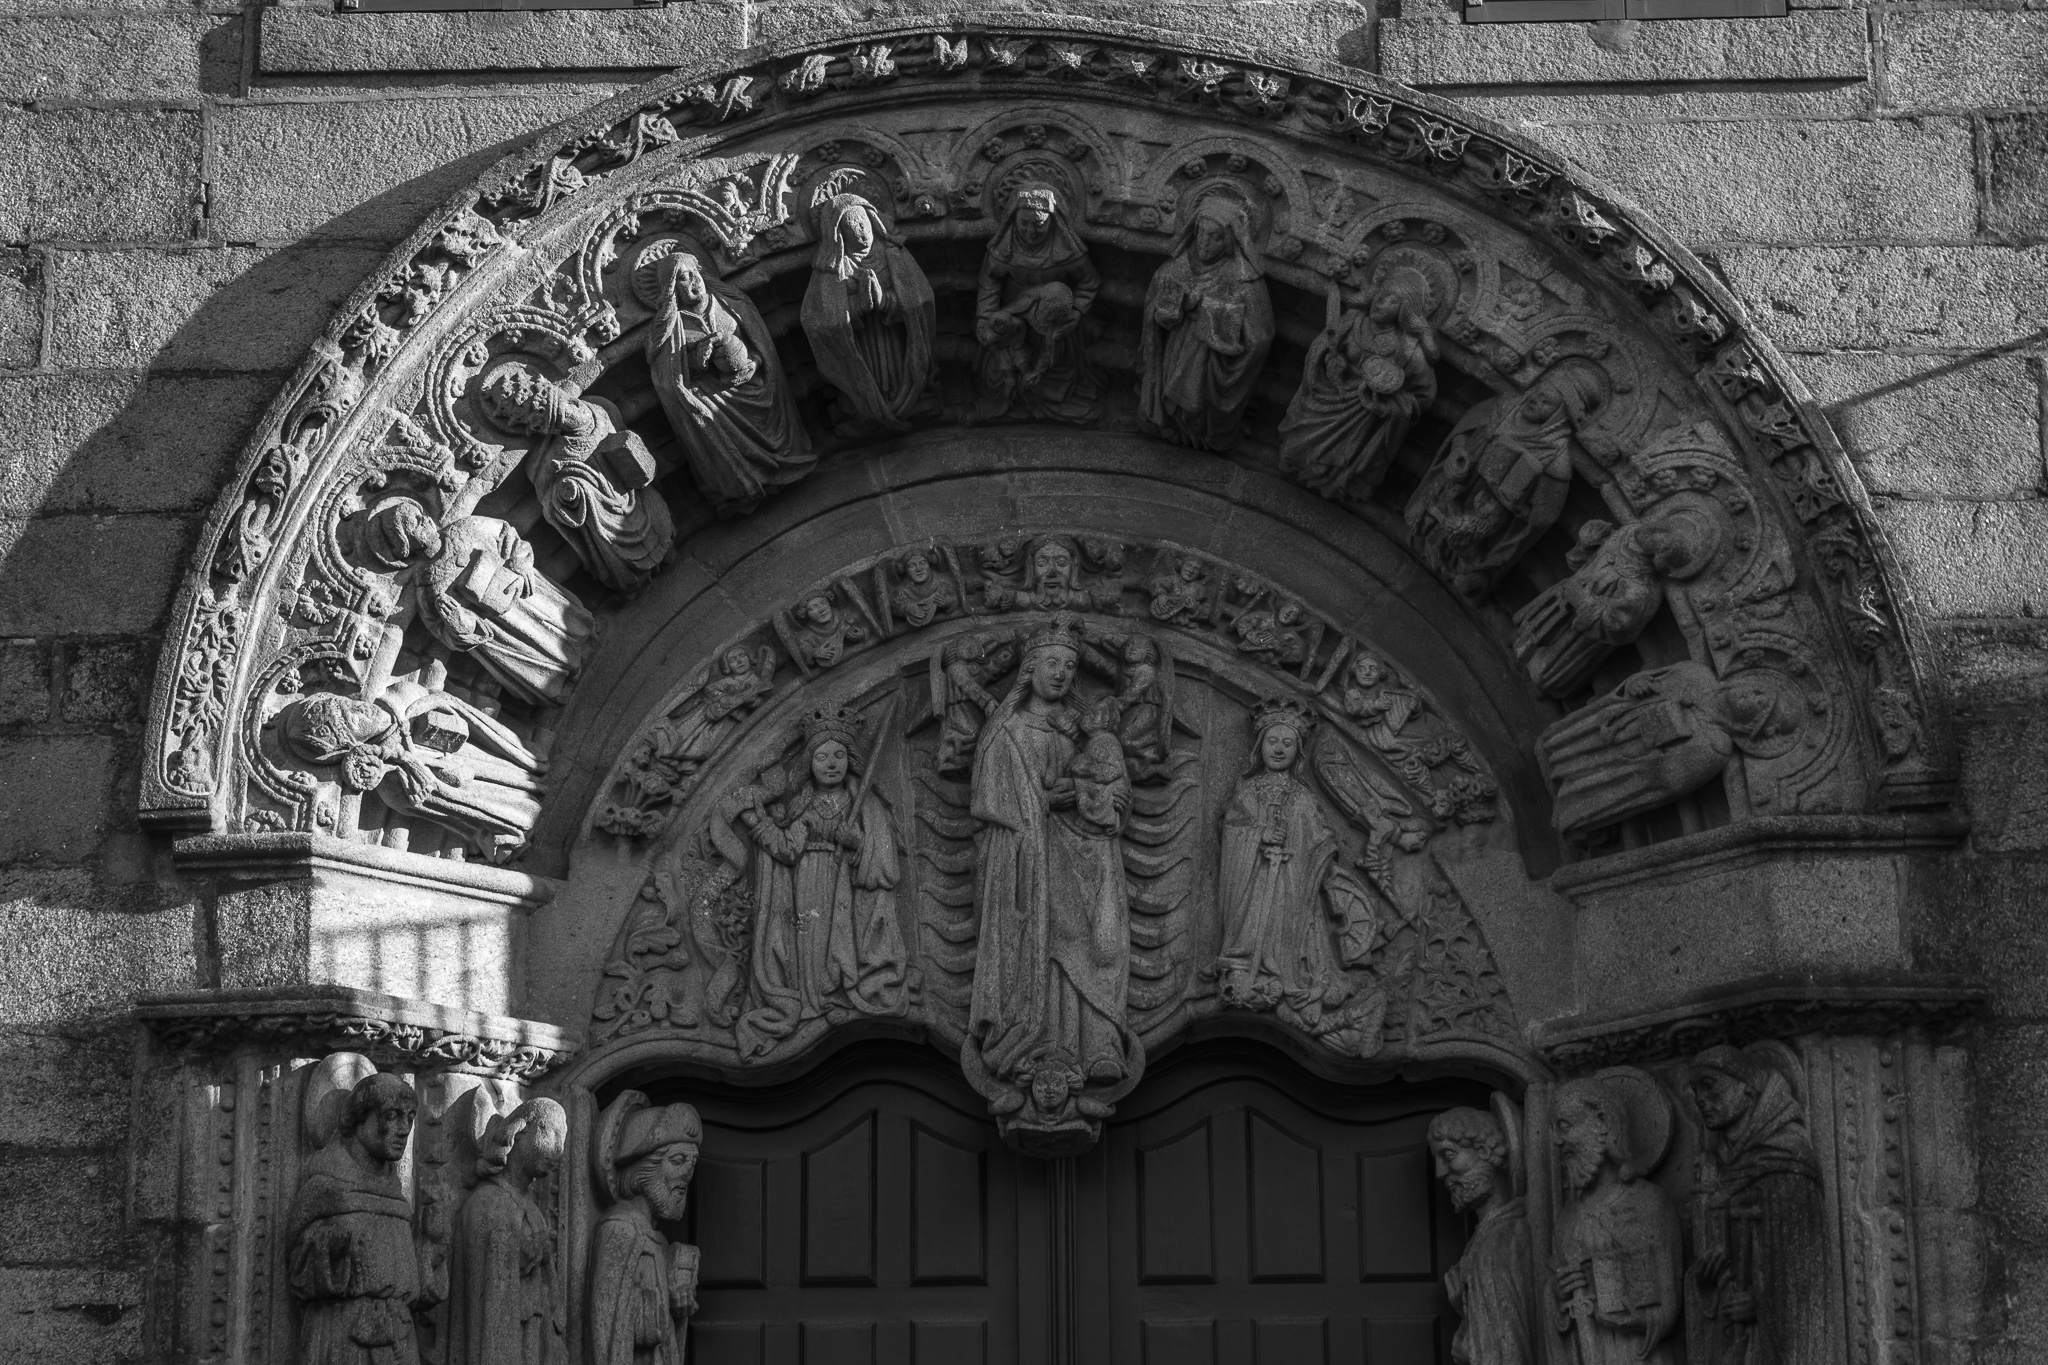 The school of San Xerome, which currently houses the Rectorate of the University, is an old College located in the Plaza del Obradoiro. <br>Founded by Archbishop Fonseca III with the idea of ​​housing poor students, the Gothic portal (1490-1500) shows the image of the Virgin and Child in the tympanum, accompanied by different saints.